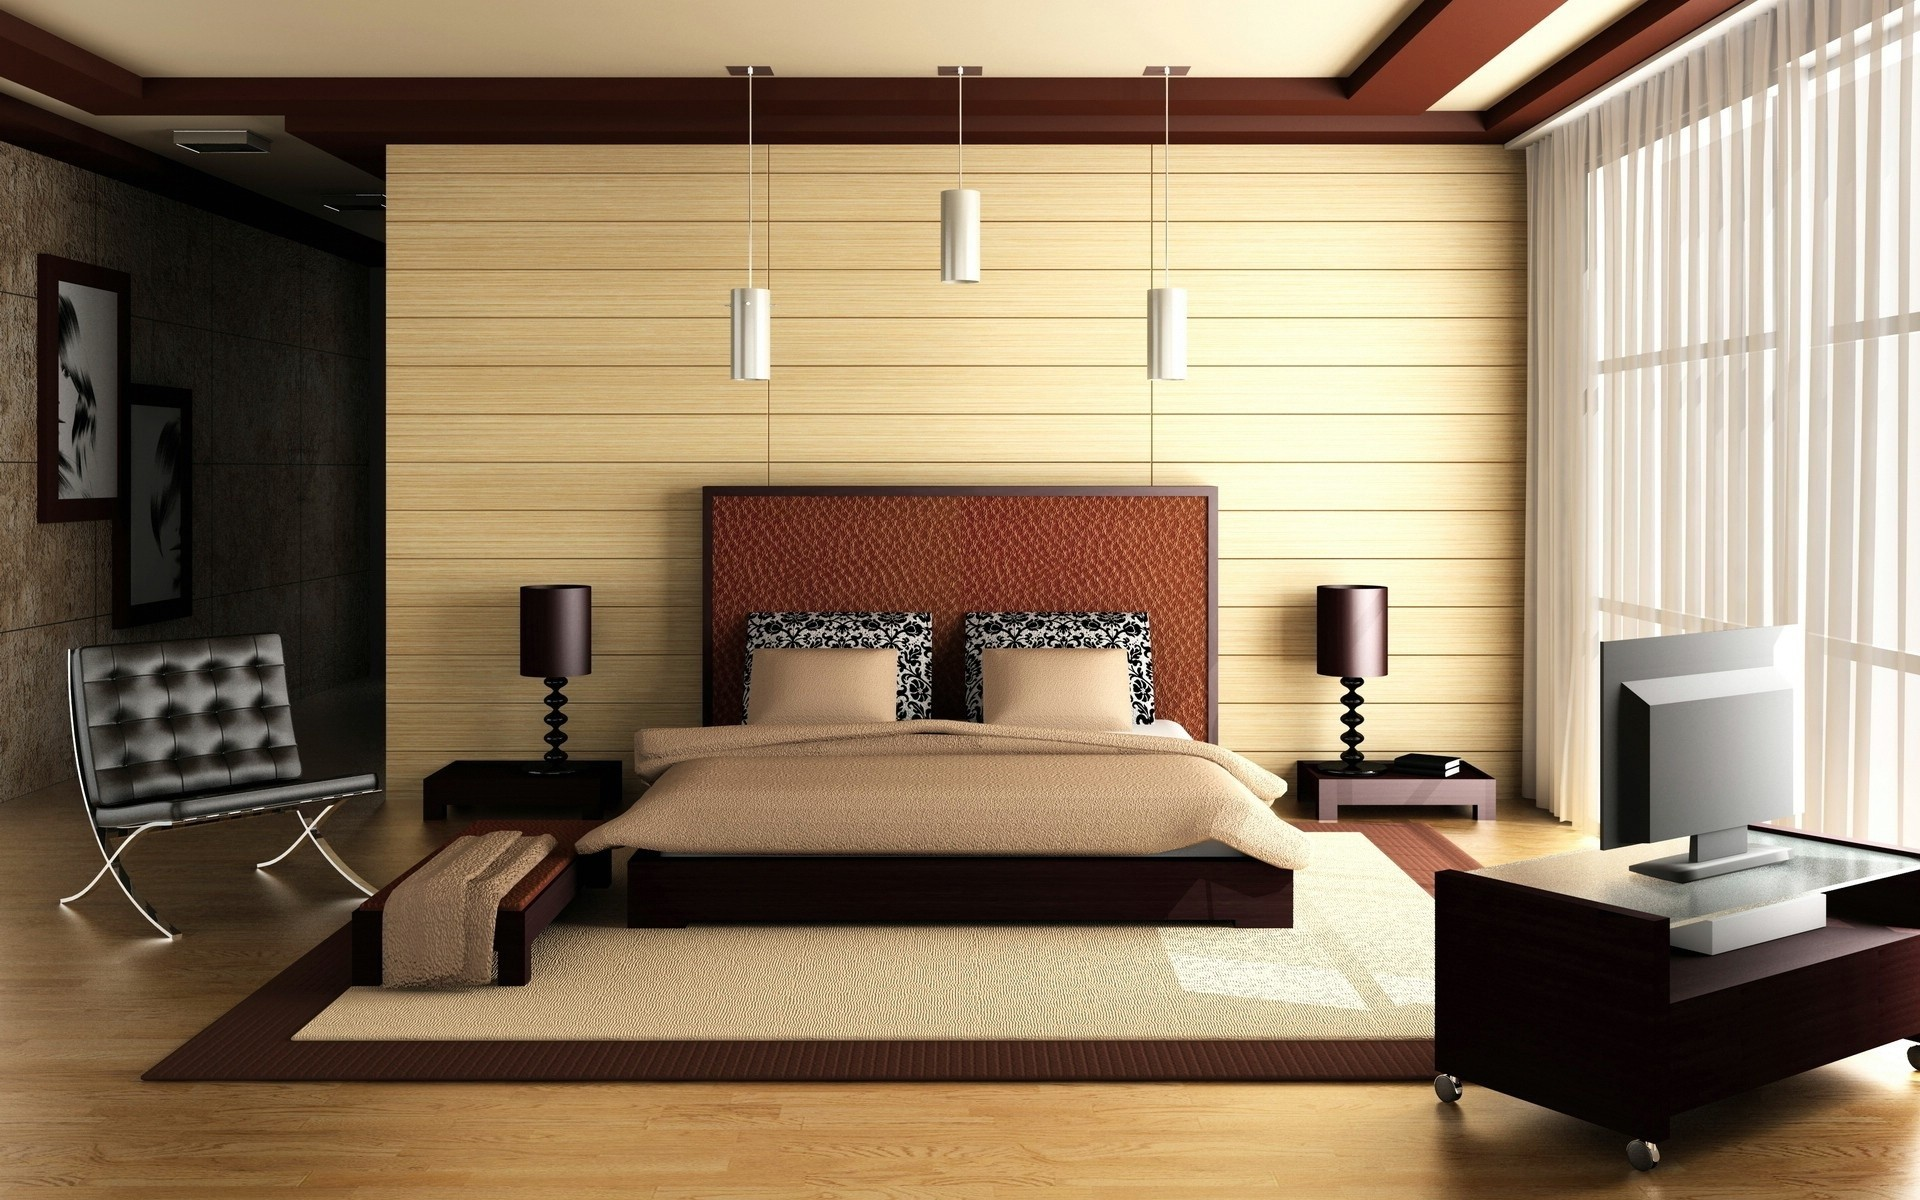 Habitaci n matrimonial 3d hd 1920x1200 imagenes for Matrimonial bedroom design